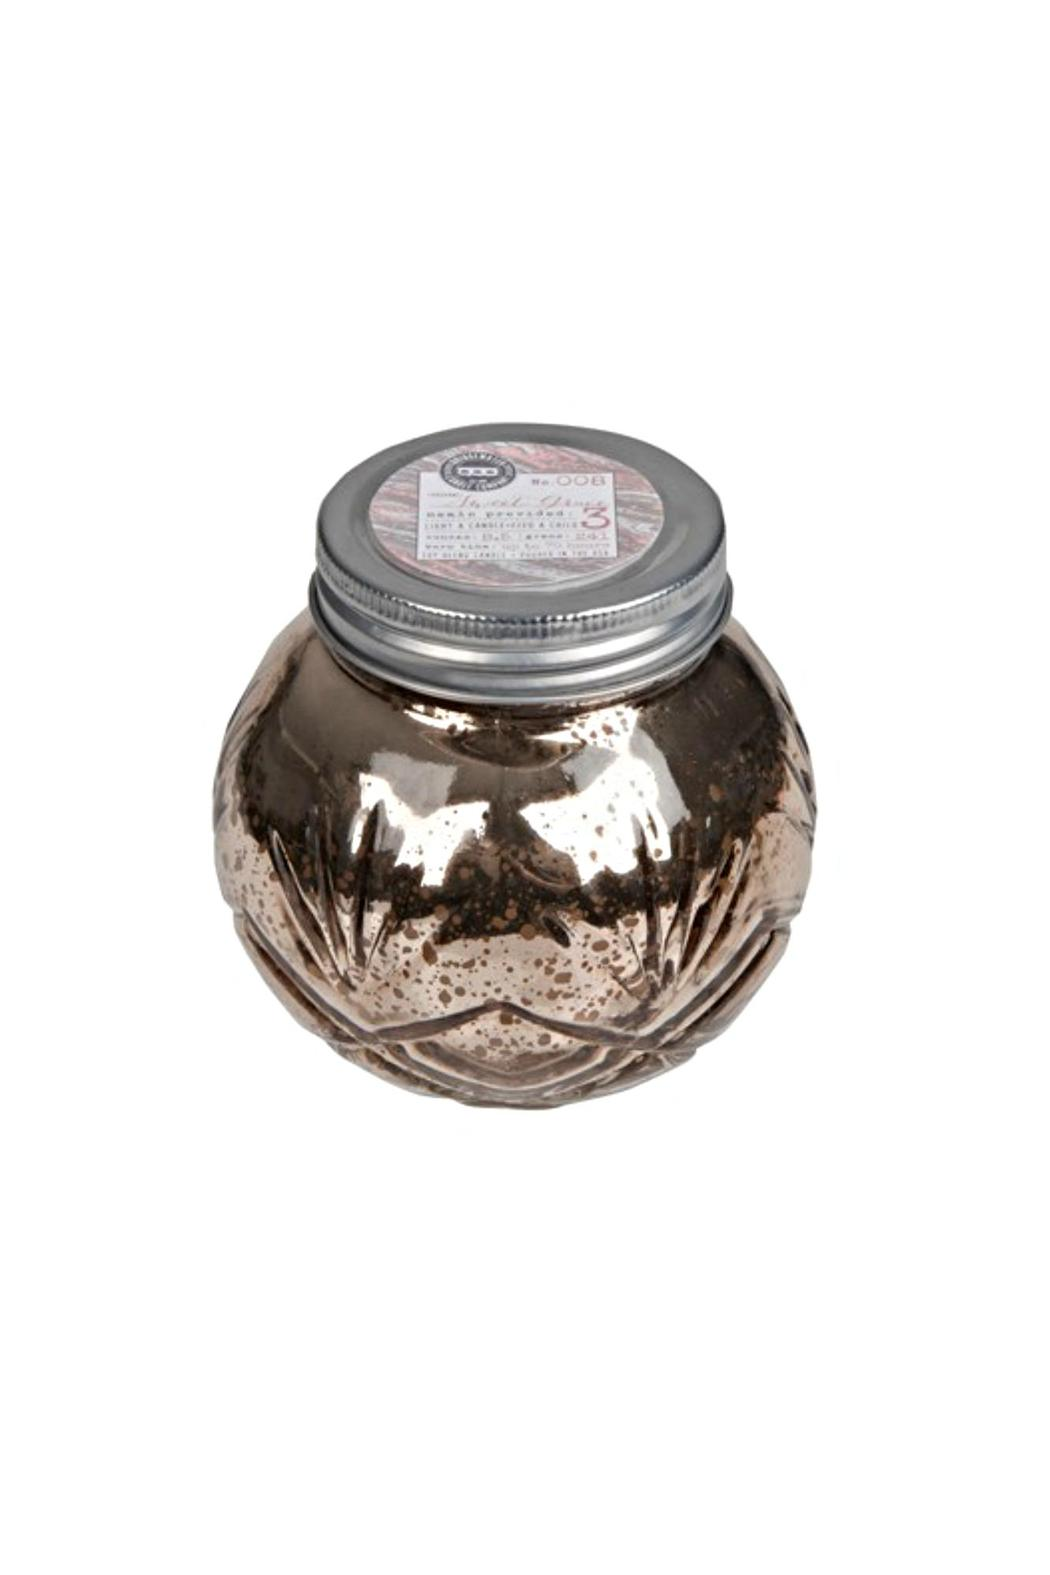 Bridgewater Candle Company Sweet-Grace Metallic Candle from